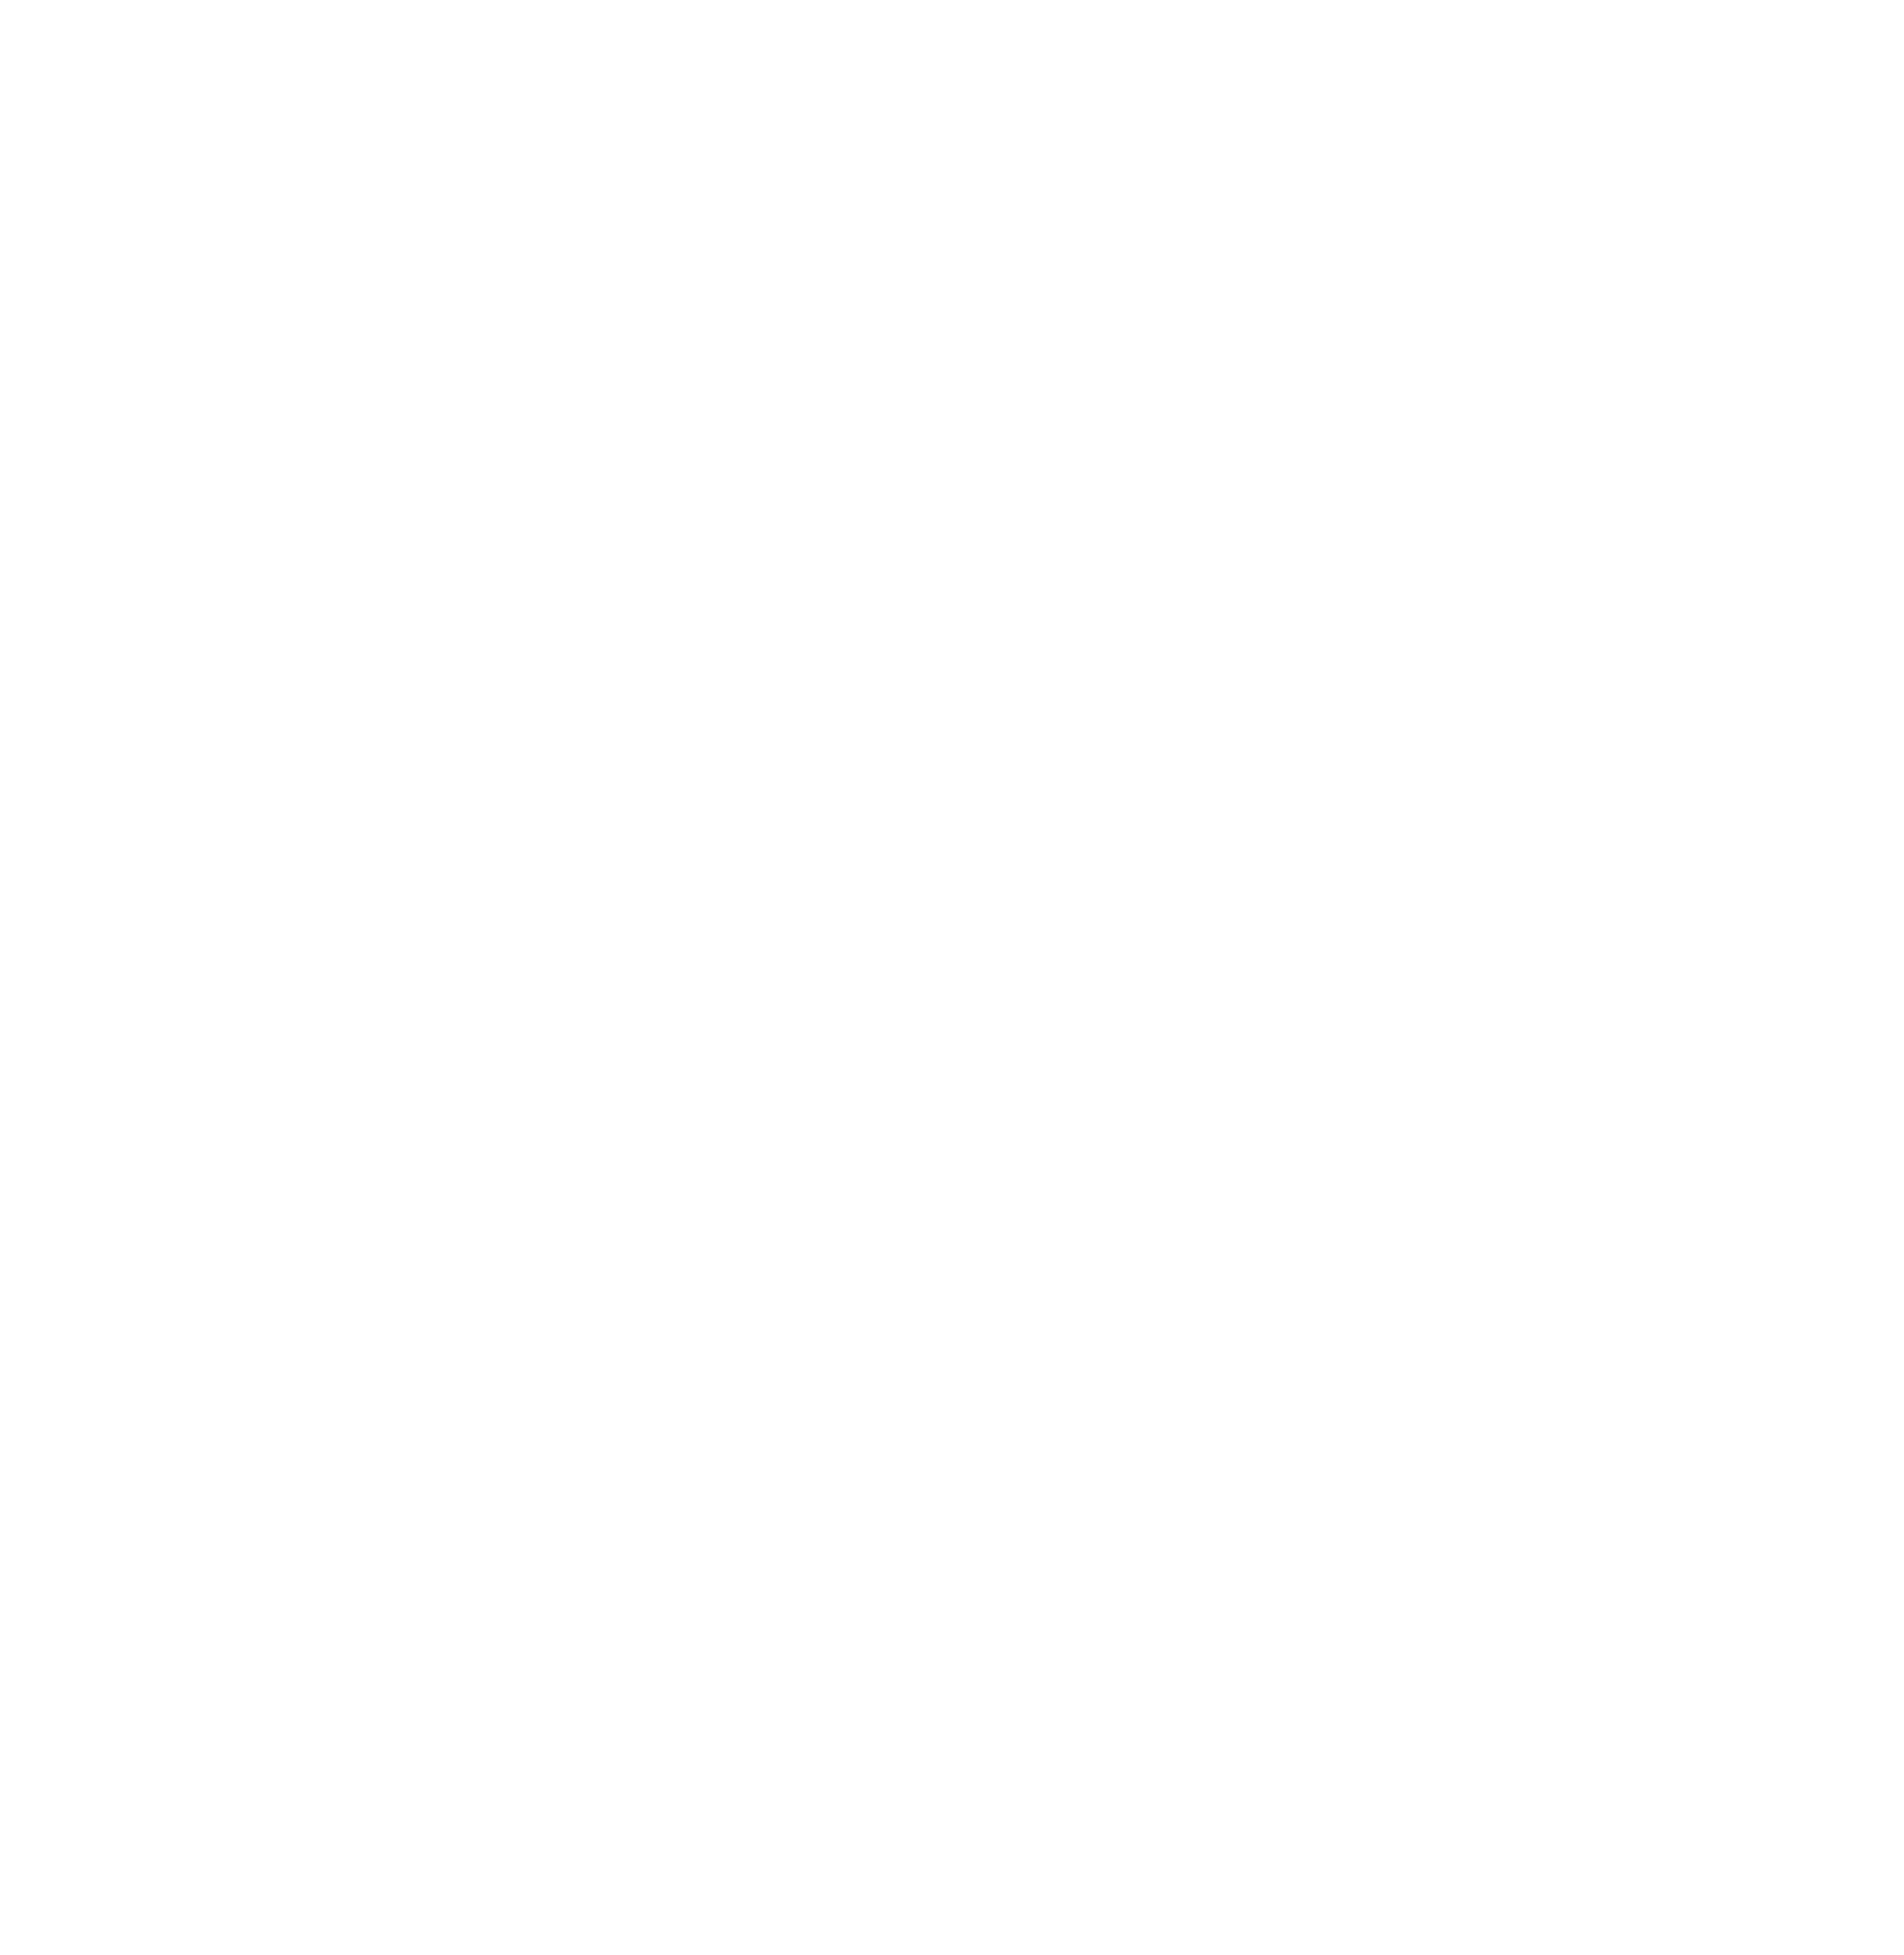 Media-logo-white.png